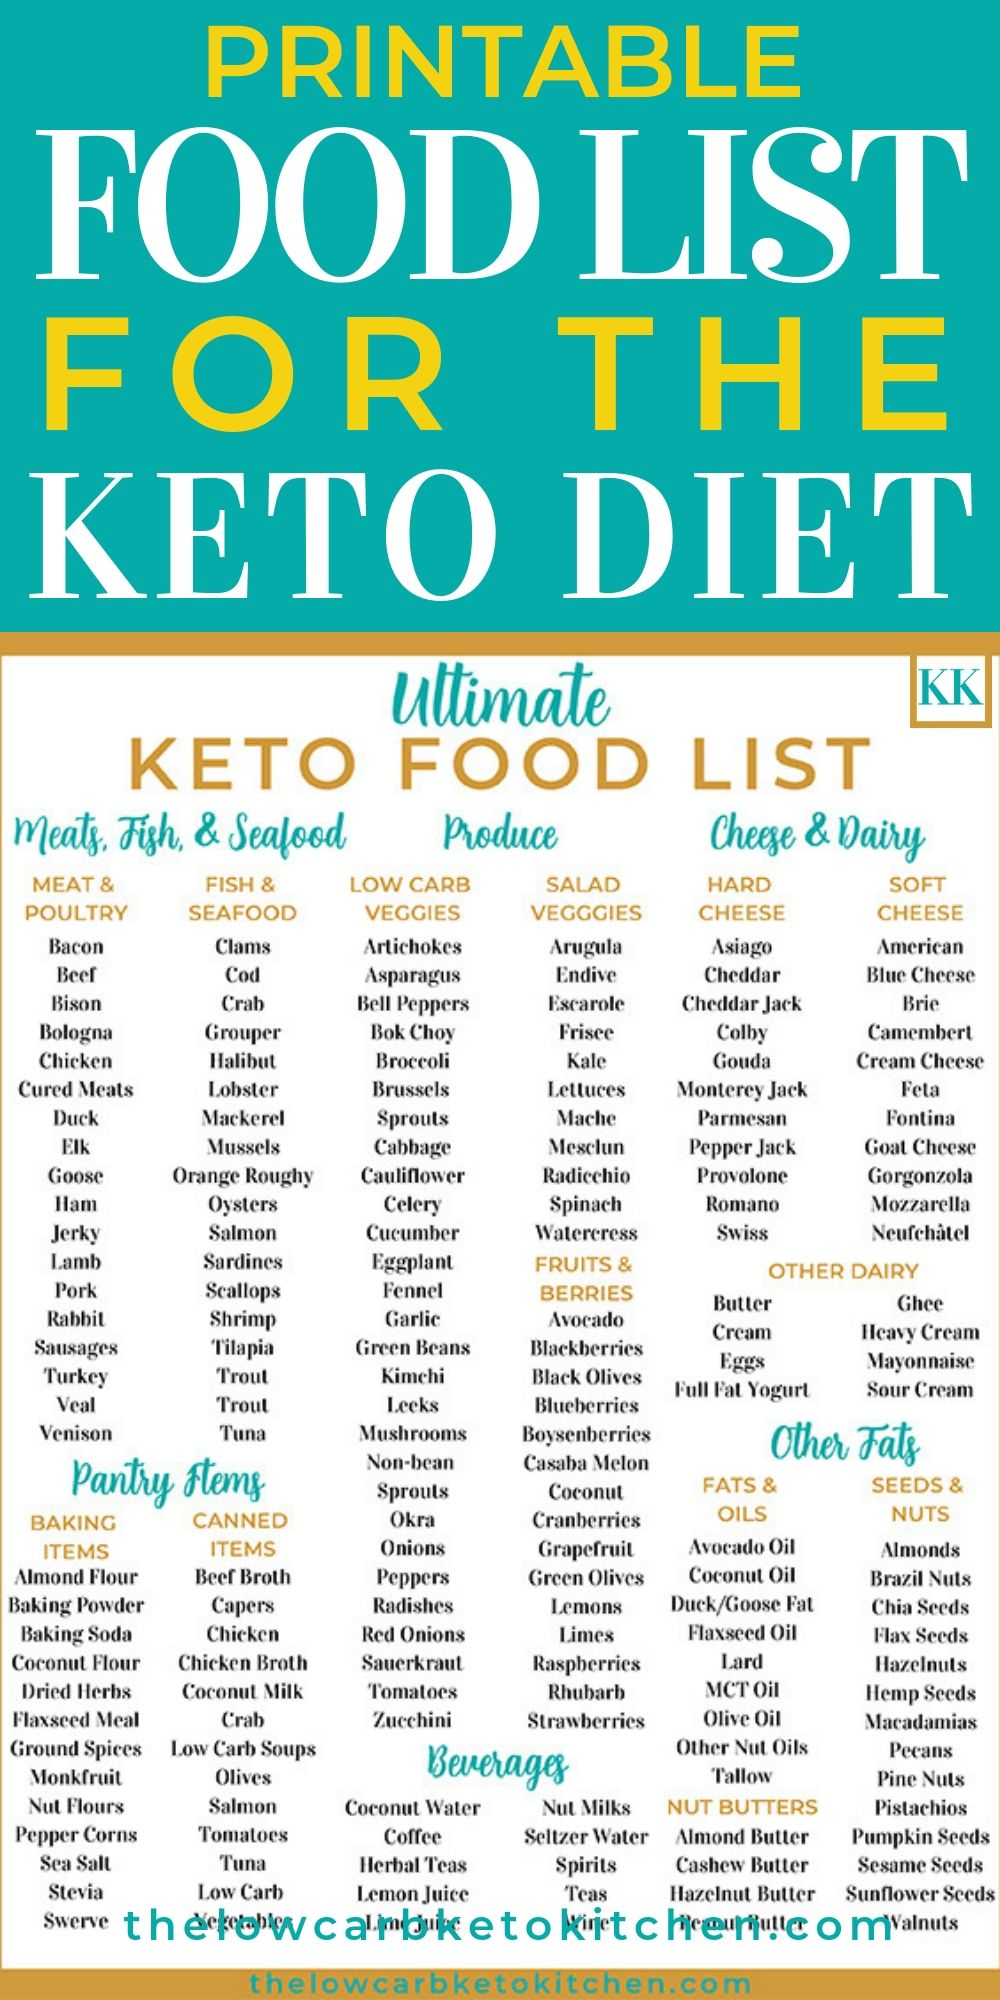 Are You Tired Of Hearing What You Can T Eat On The Ketogenic Diet Well Here S A List Of What You Can Eat Keto Food List Keto Diet Food List Diet Food